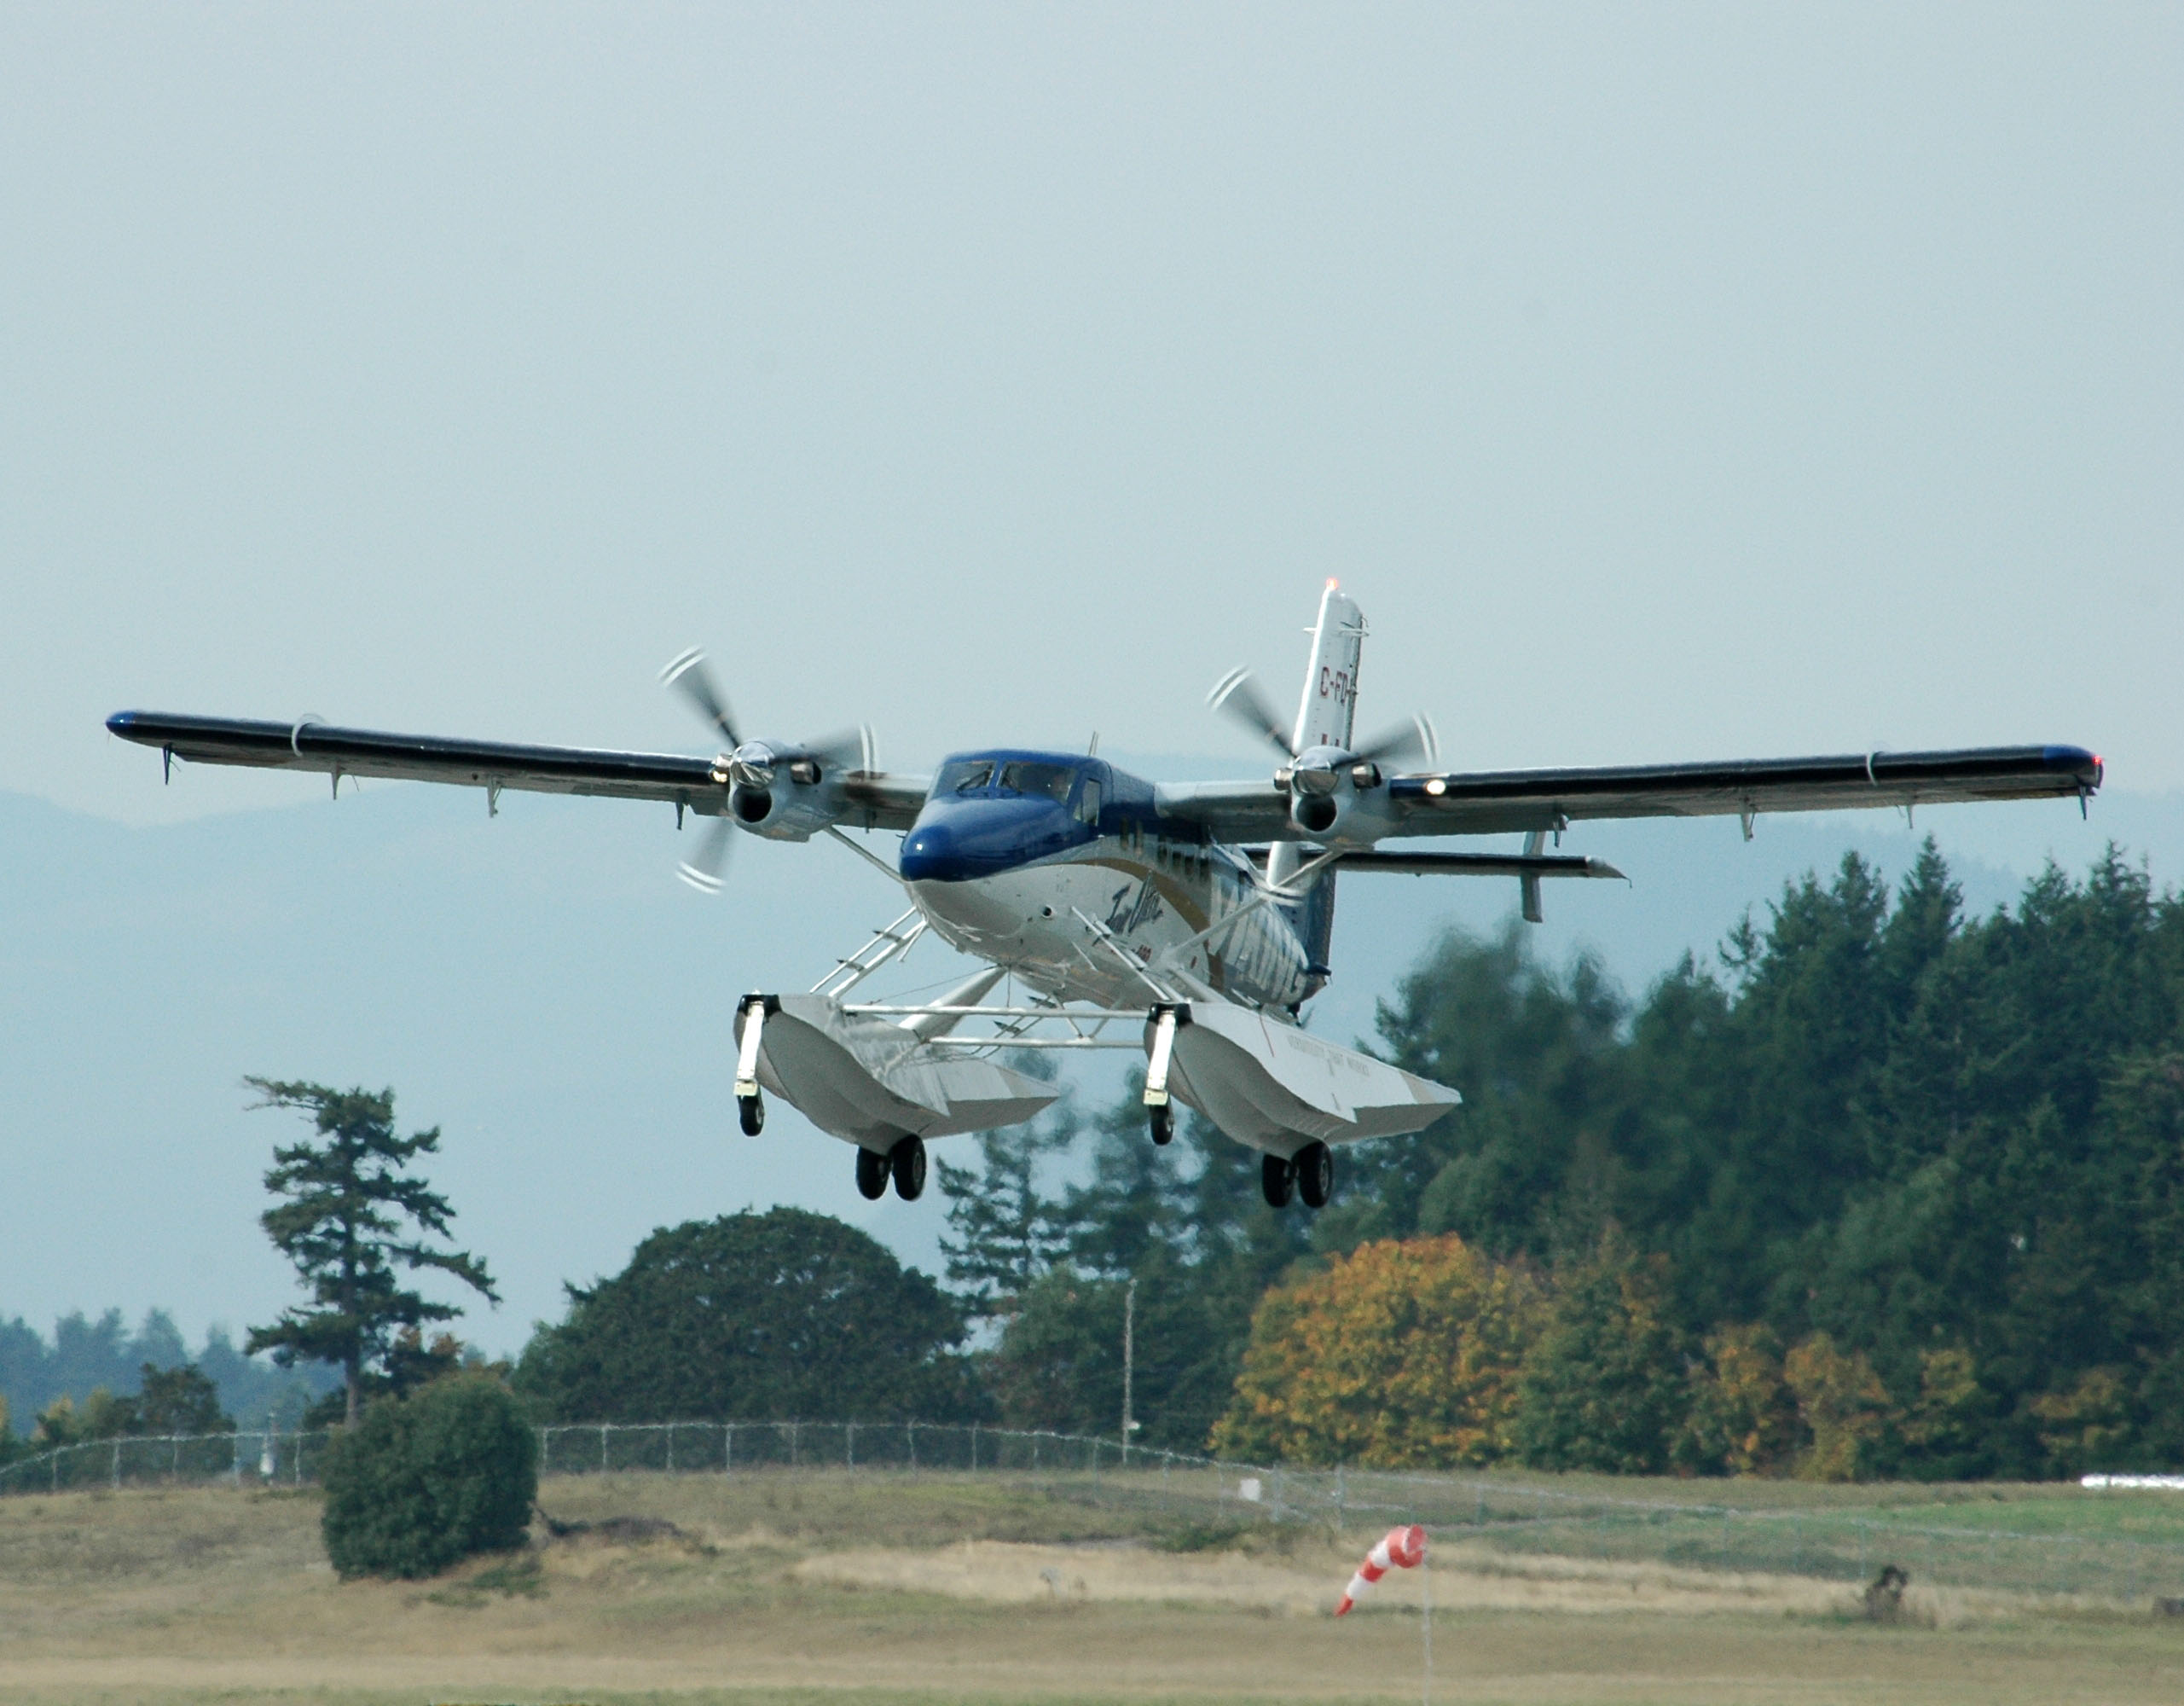 http://upload.wikimedia.org/wikipedia/commons/6/61/First_Flight_Twin_Otter_Series_400_C-FDHT.jpg